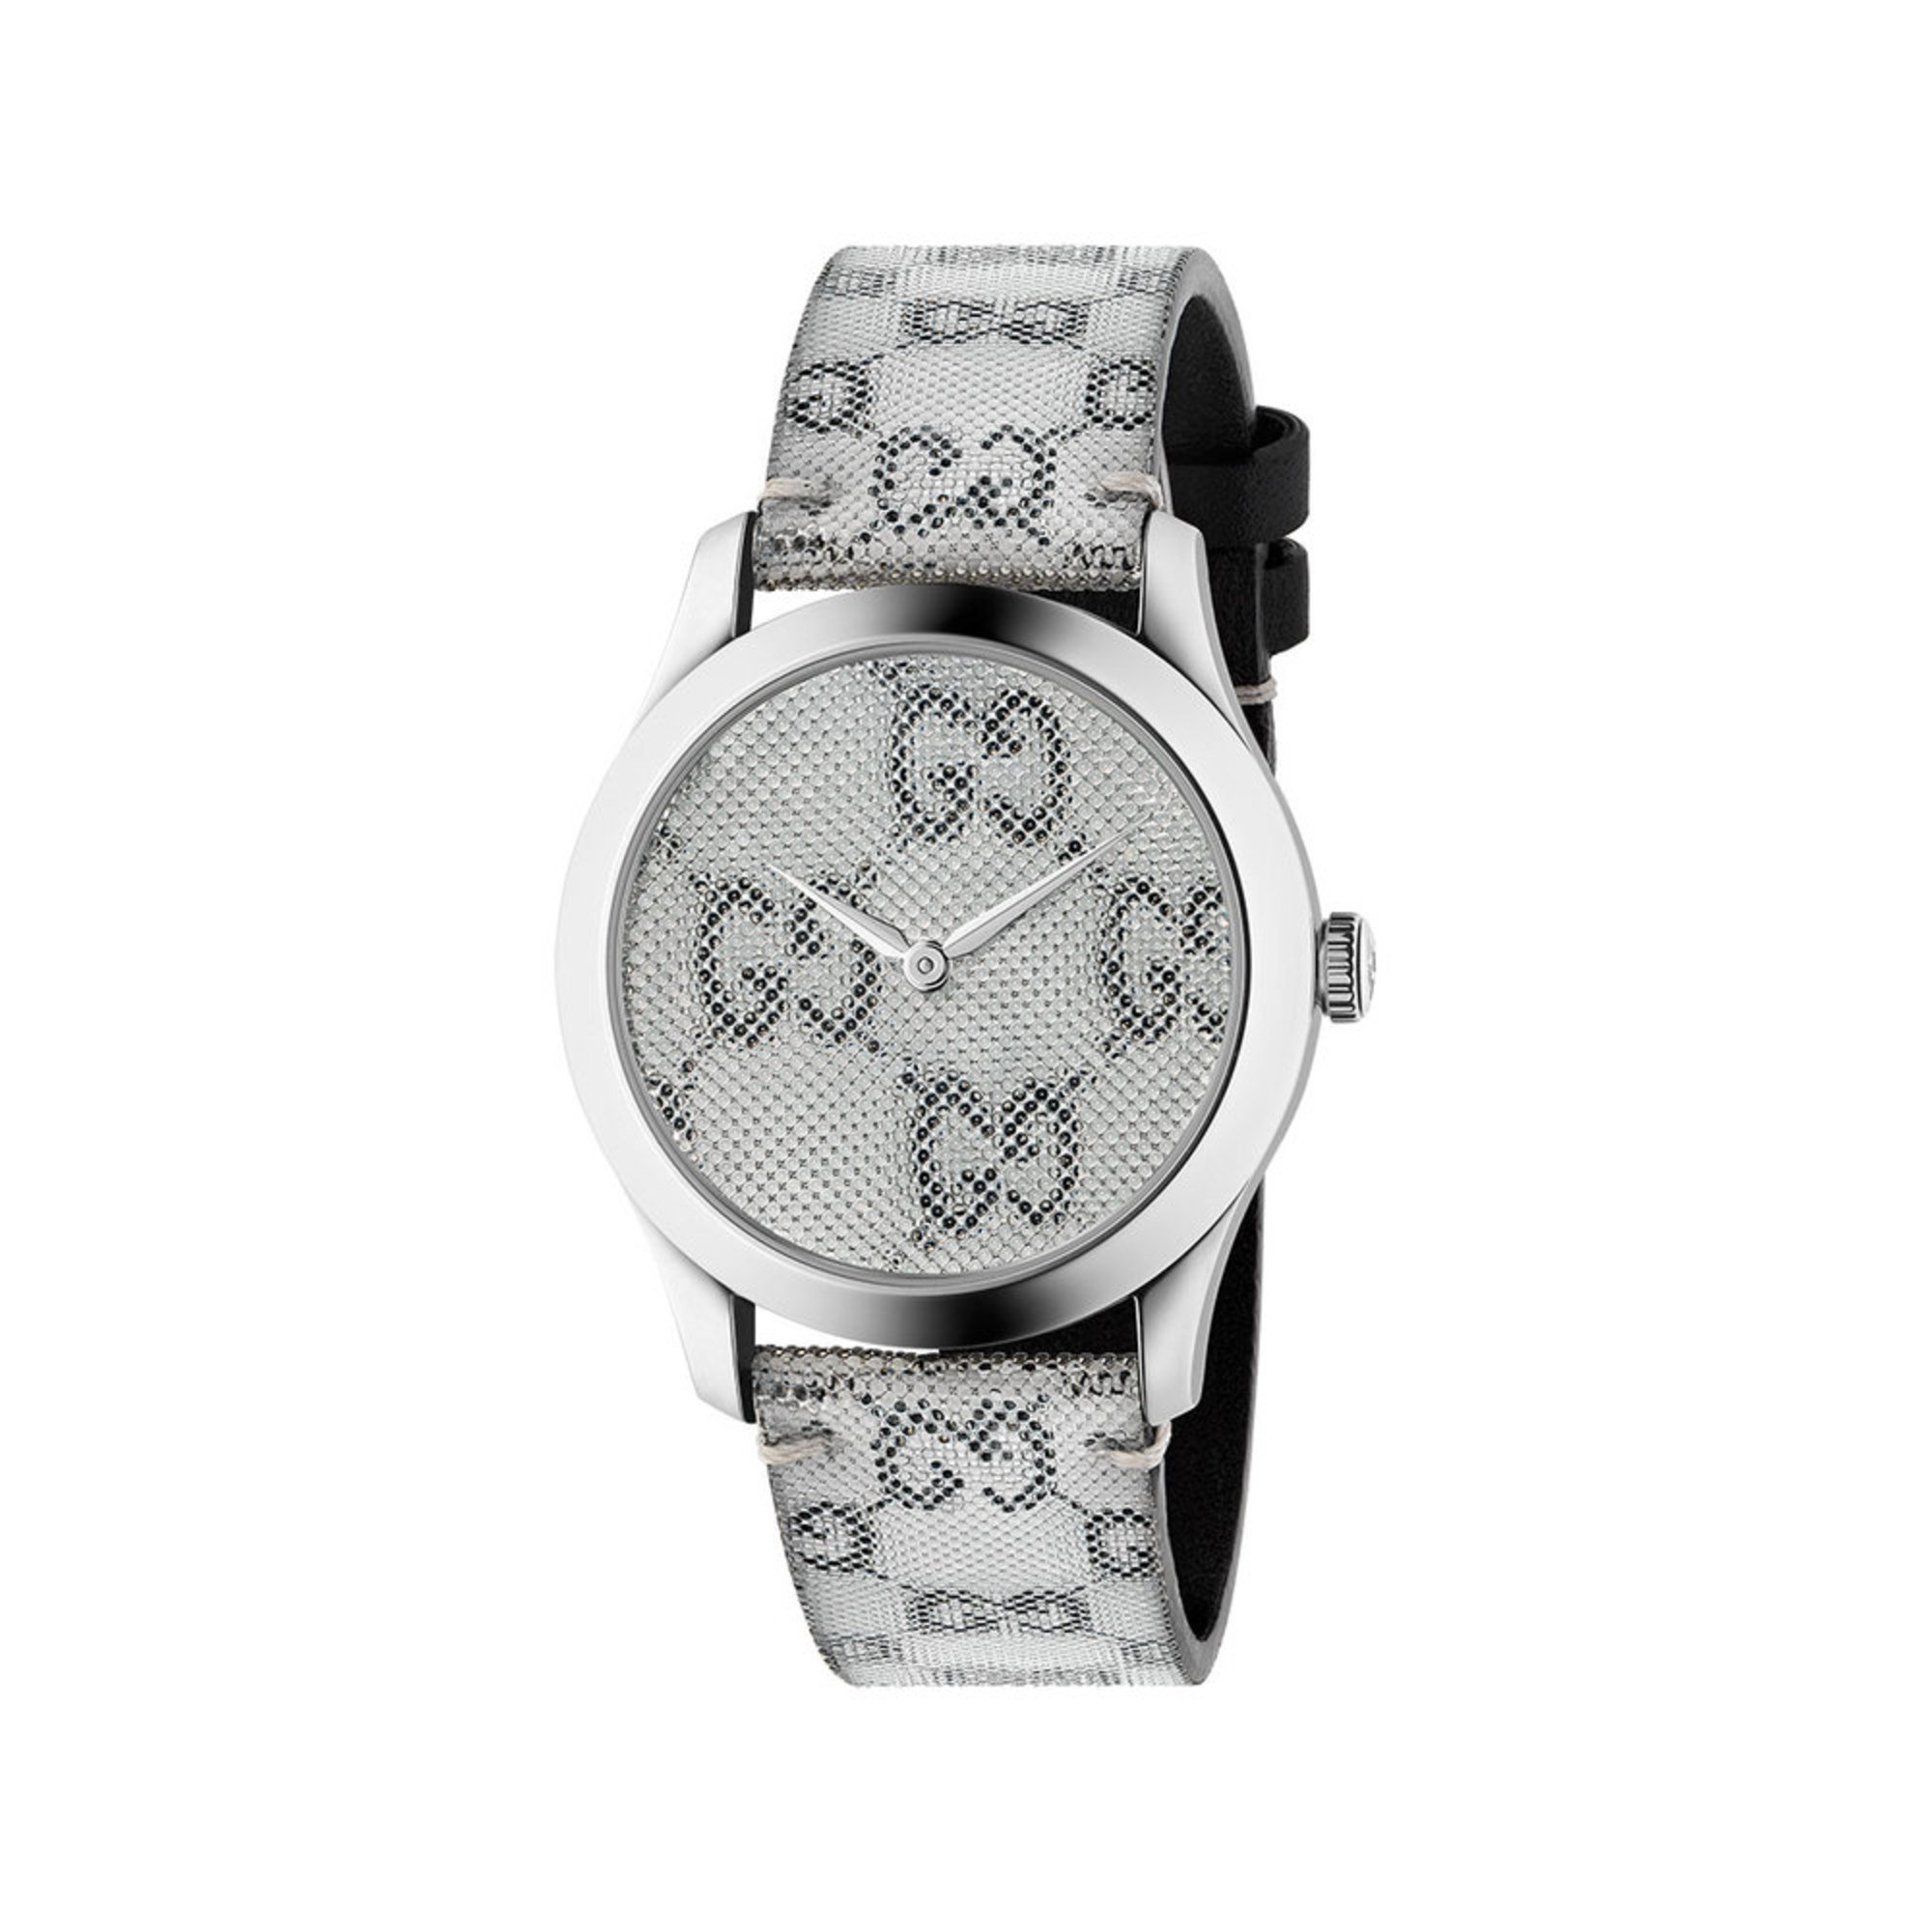 412bf6e94da Gucci Women s Timeless Stainless Steel Case Grey Silver Pattern ...